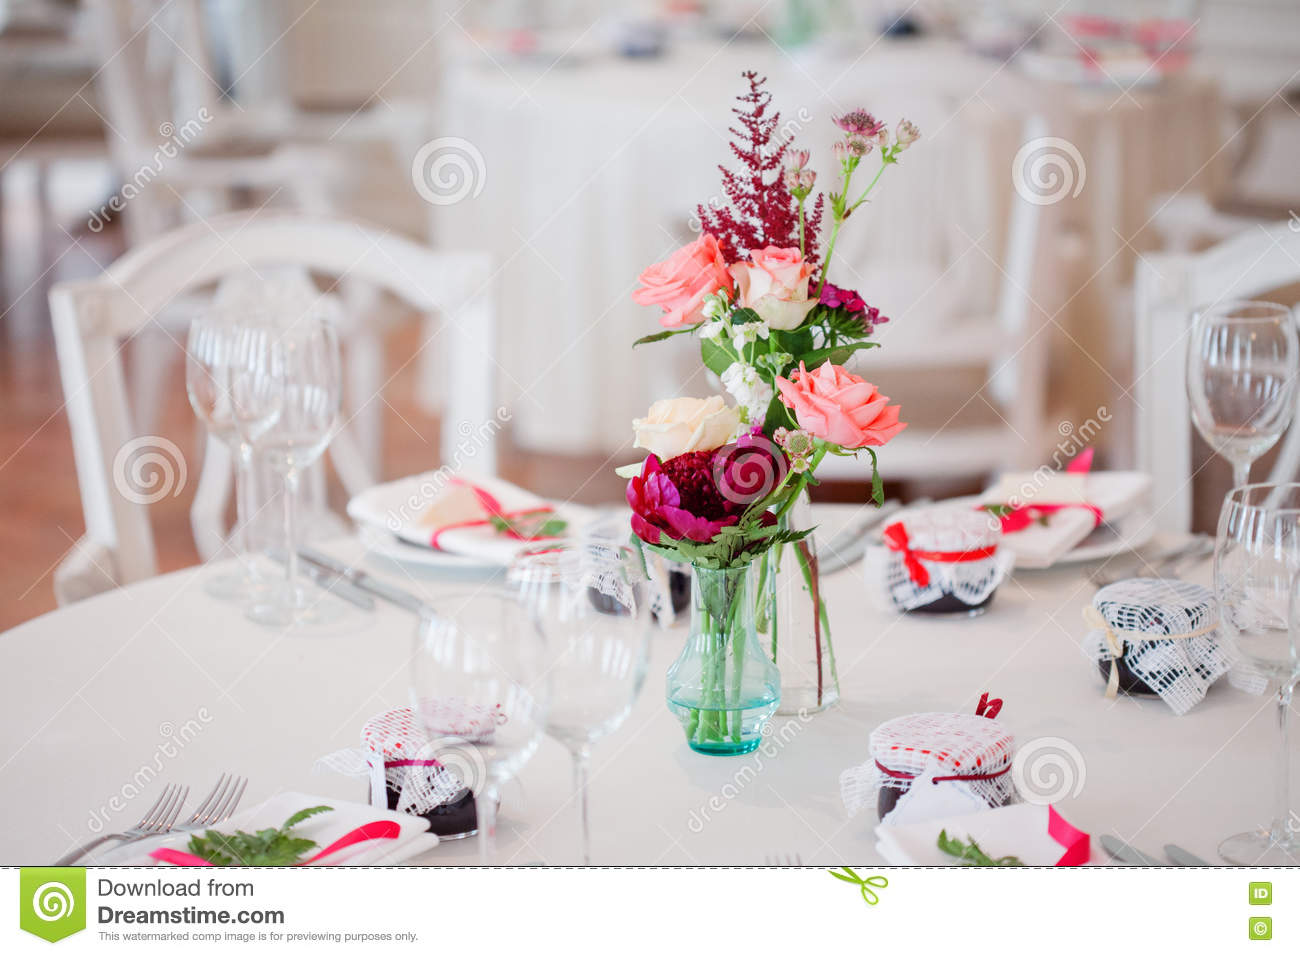 Wedding Banquet Small Restaurant Floral Decor In Red Informal Style Stock Image Image Of Elegant Bright 76367987